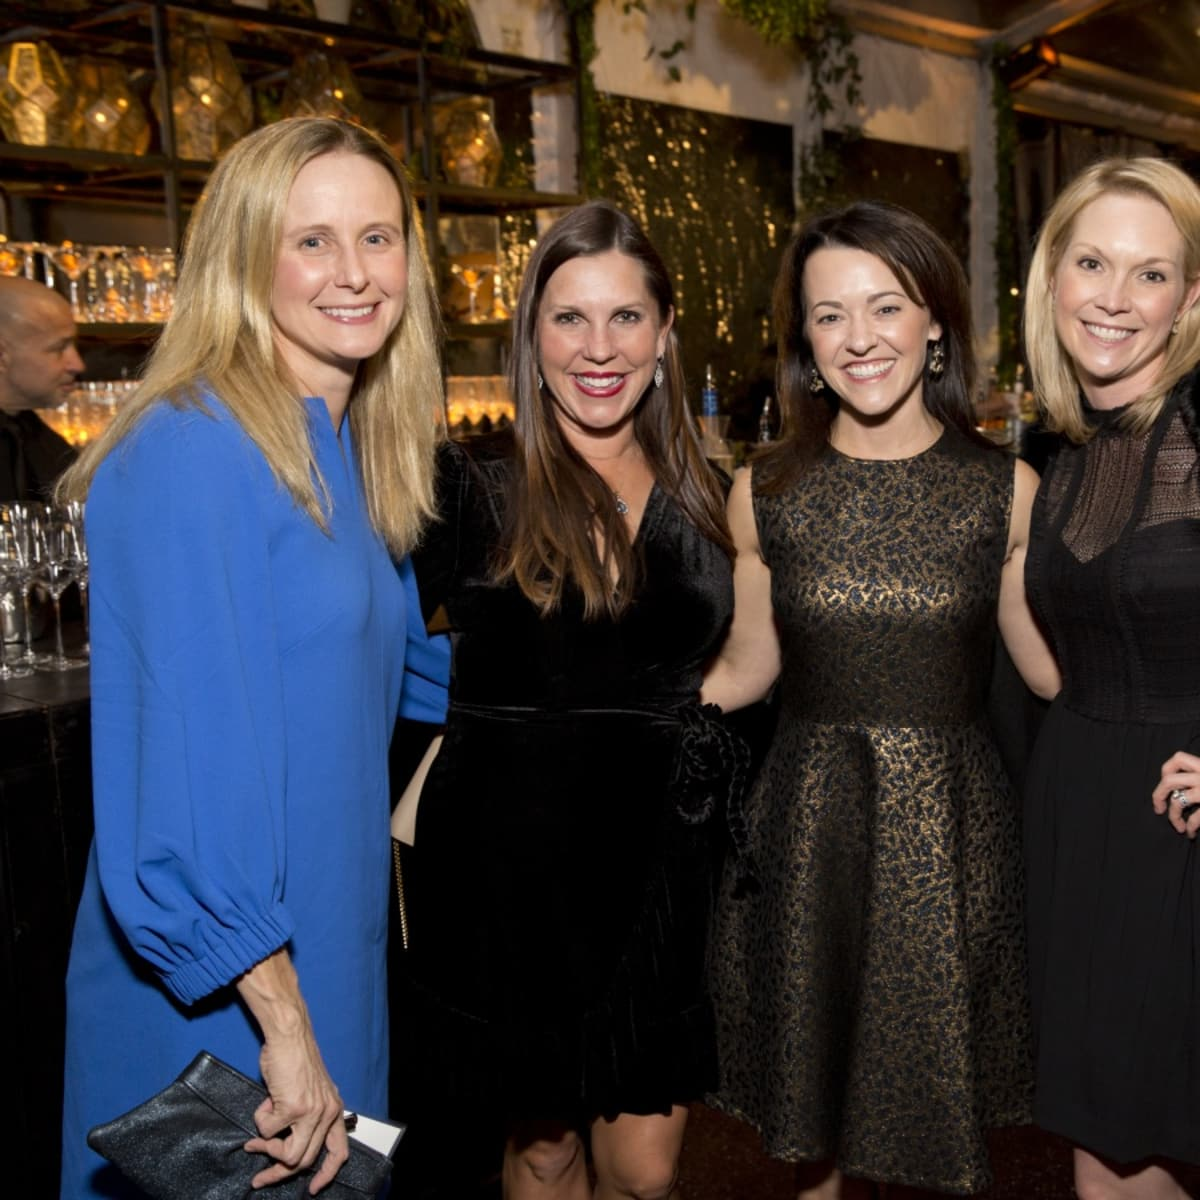 Houston, TCH Ambassadors holiday party, December 2017, Jenna Atwood, Jennifer Roberts, Chelsea Pacey, Staci Donovan